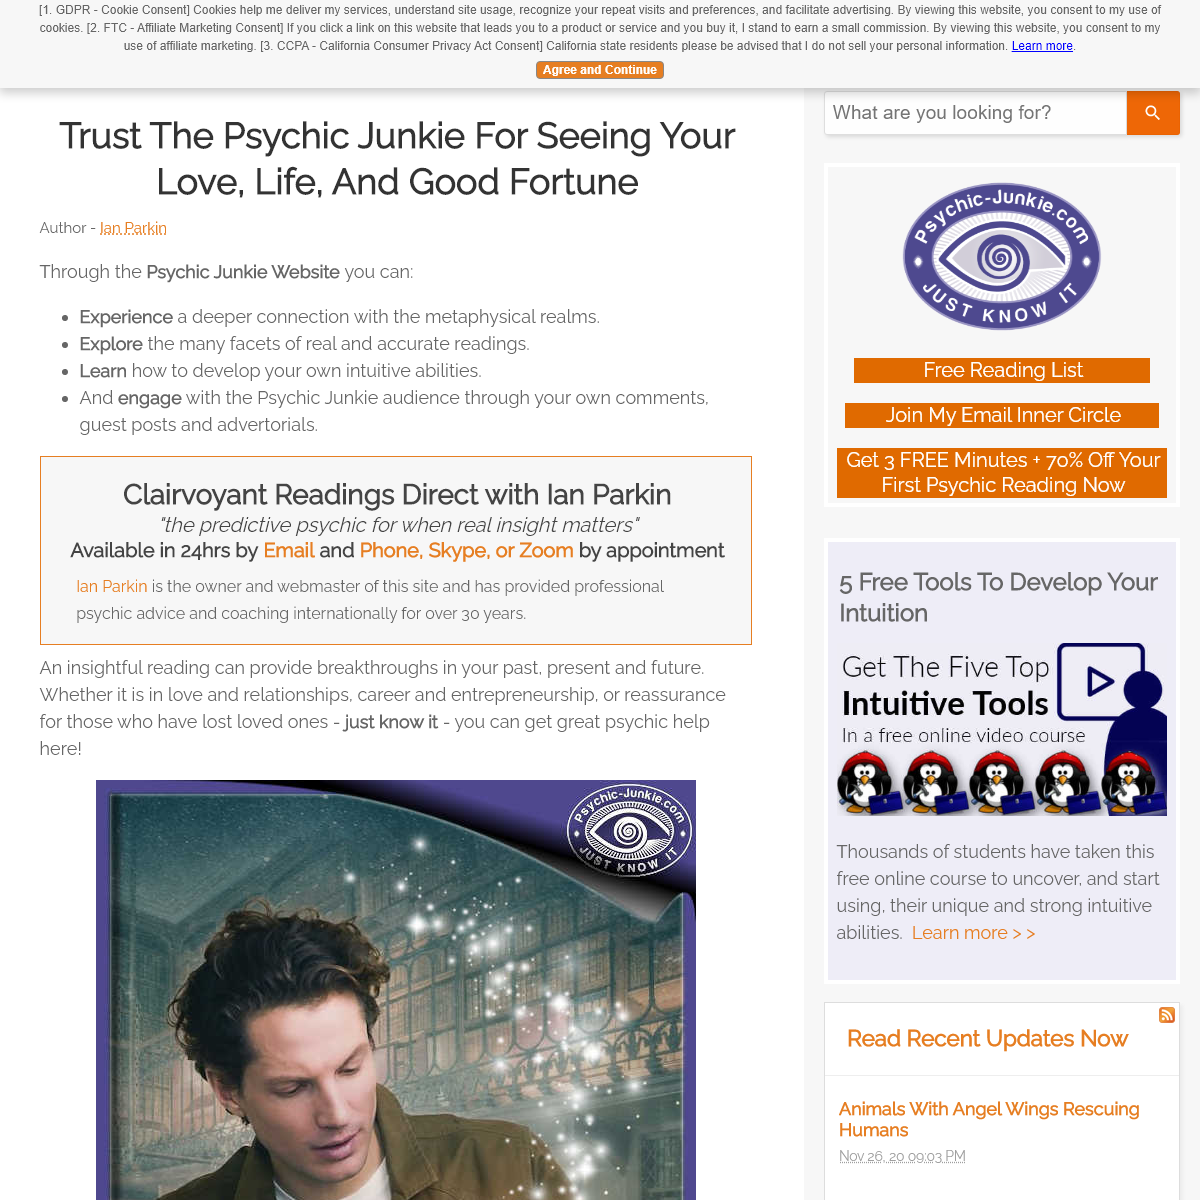 Trust The Psychic Junkie For Seeing Your Love, Life, And Good Fortune